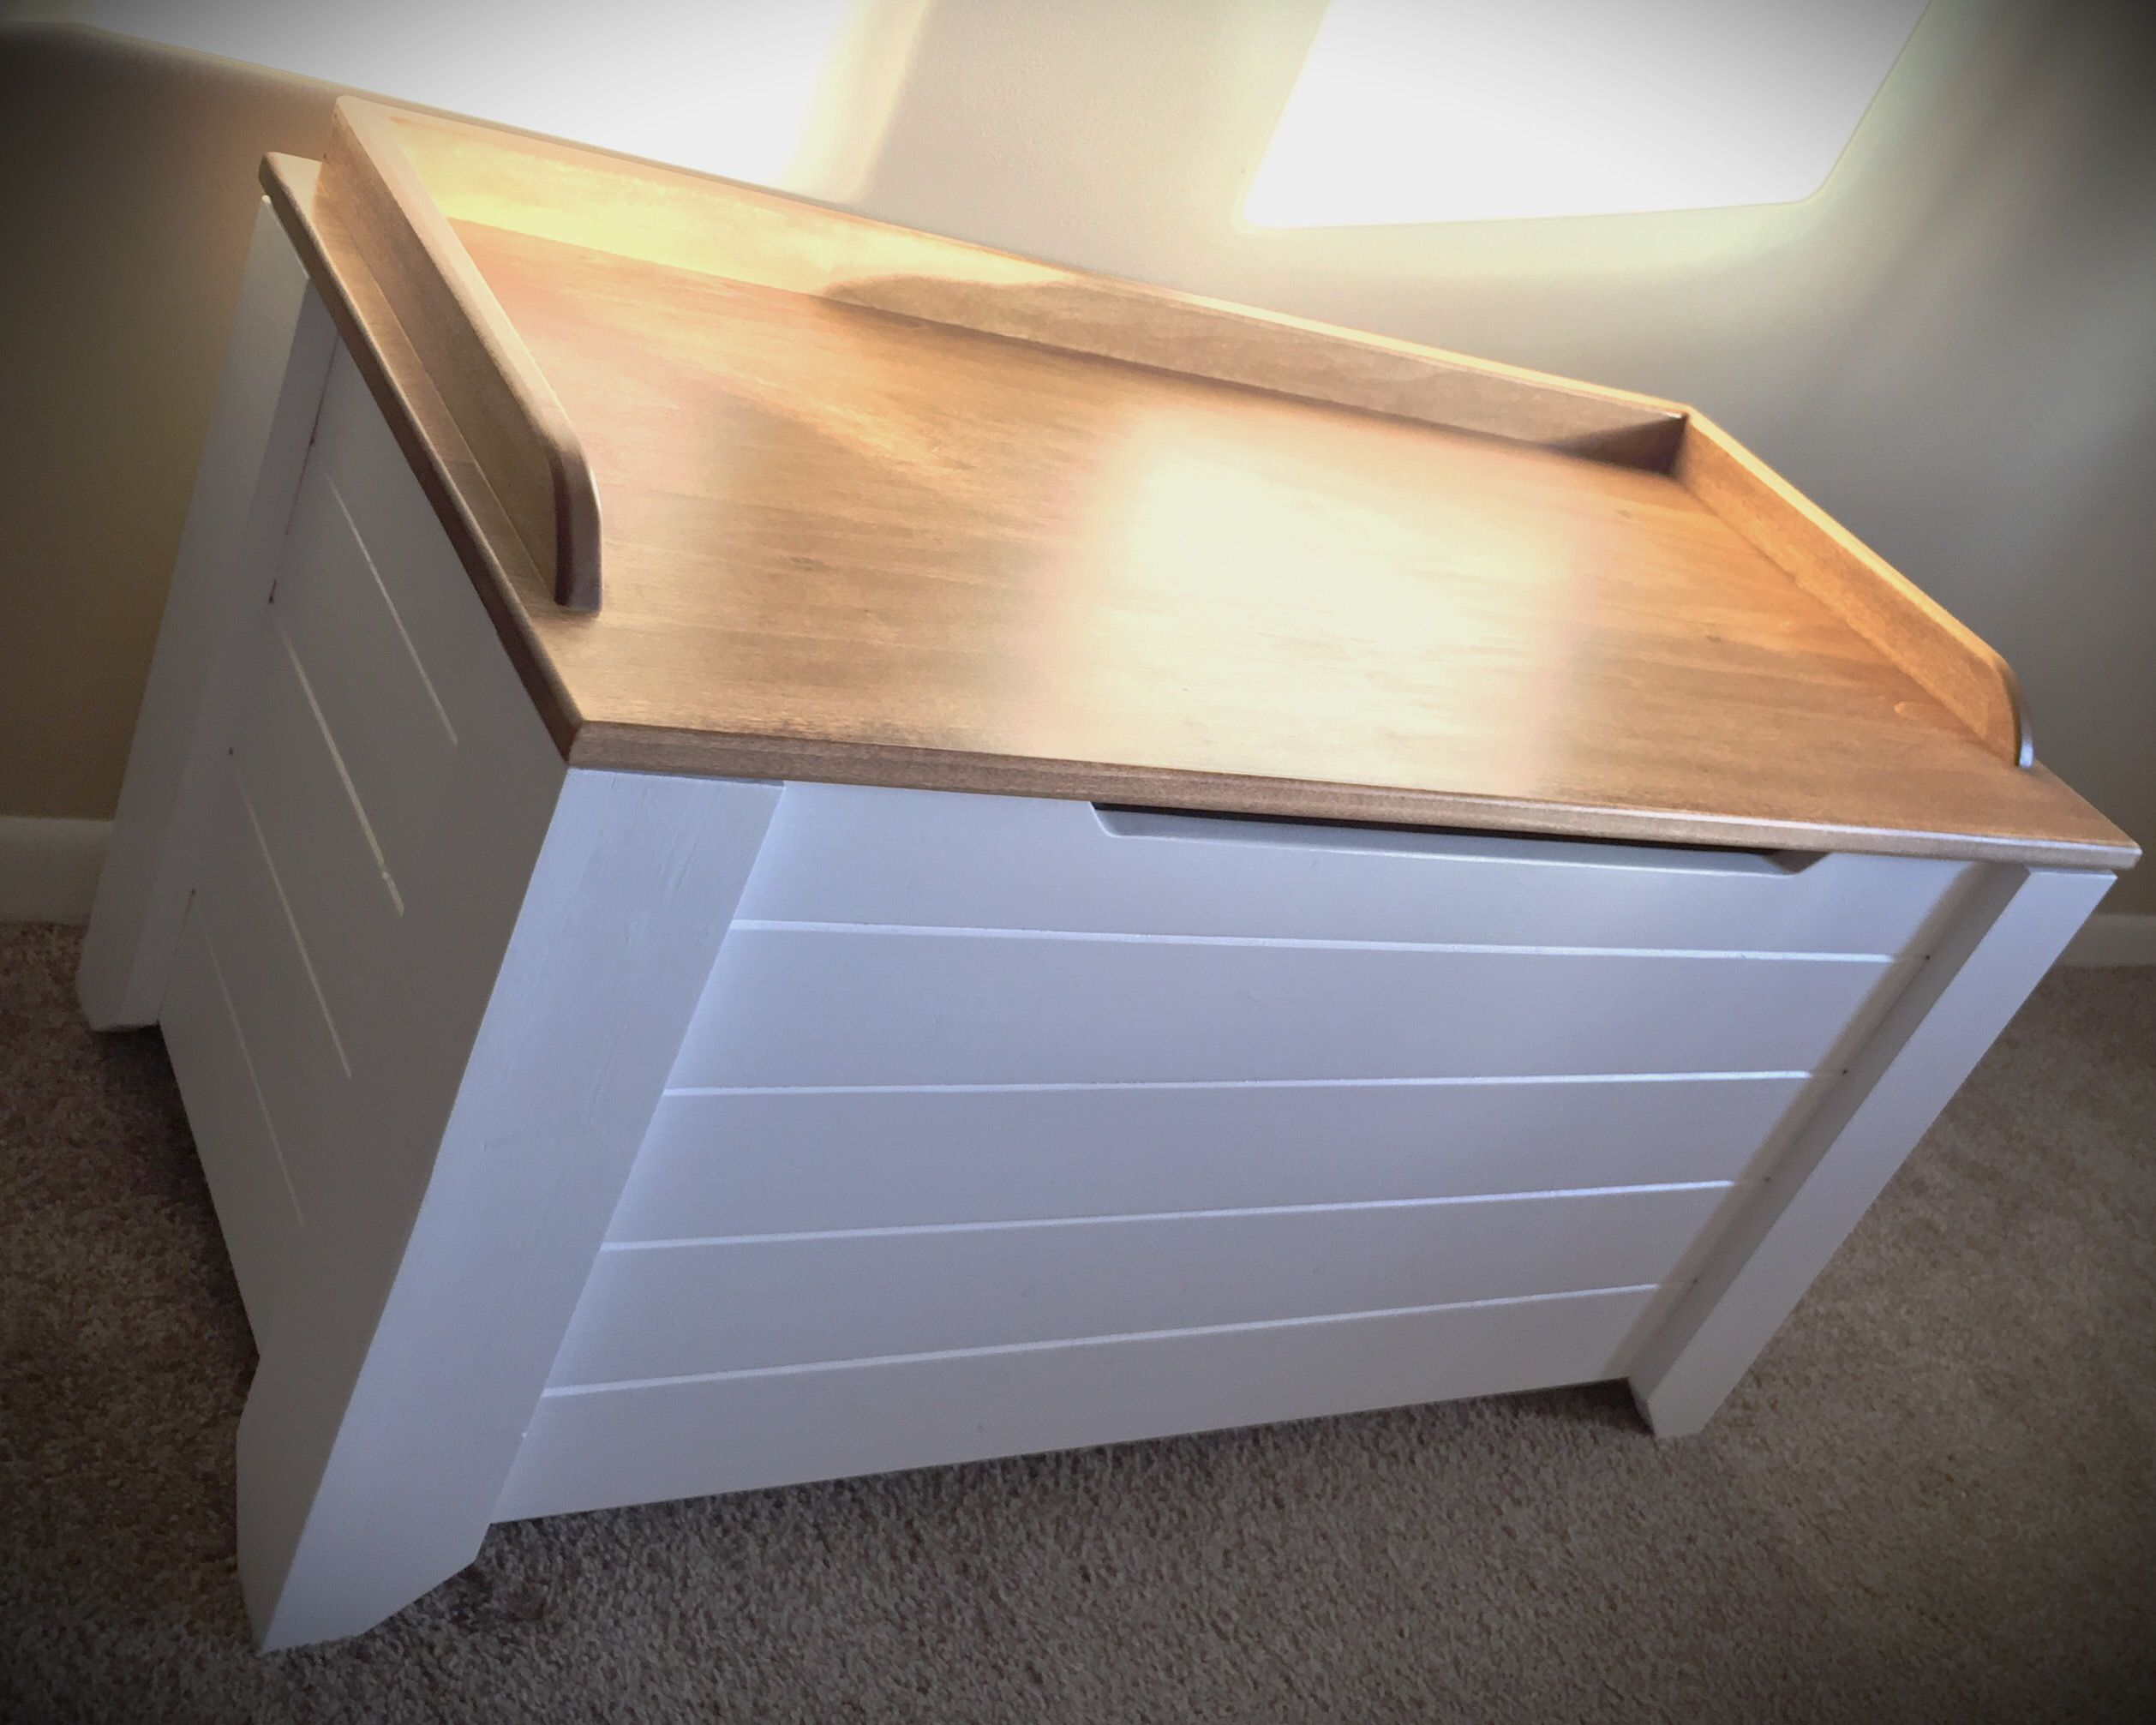 Farmhouse Style Toy Box / Blanket Chest DIY Projects